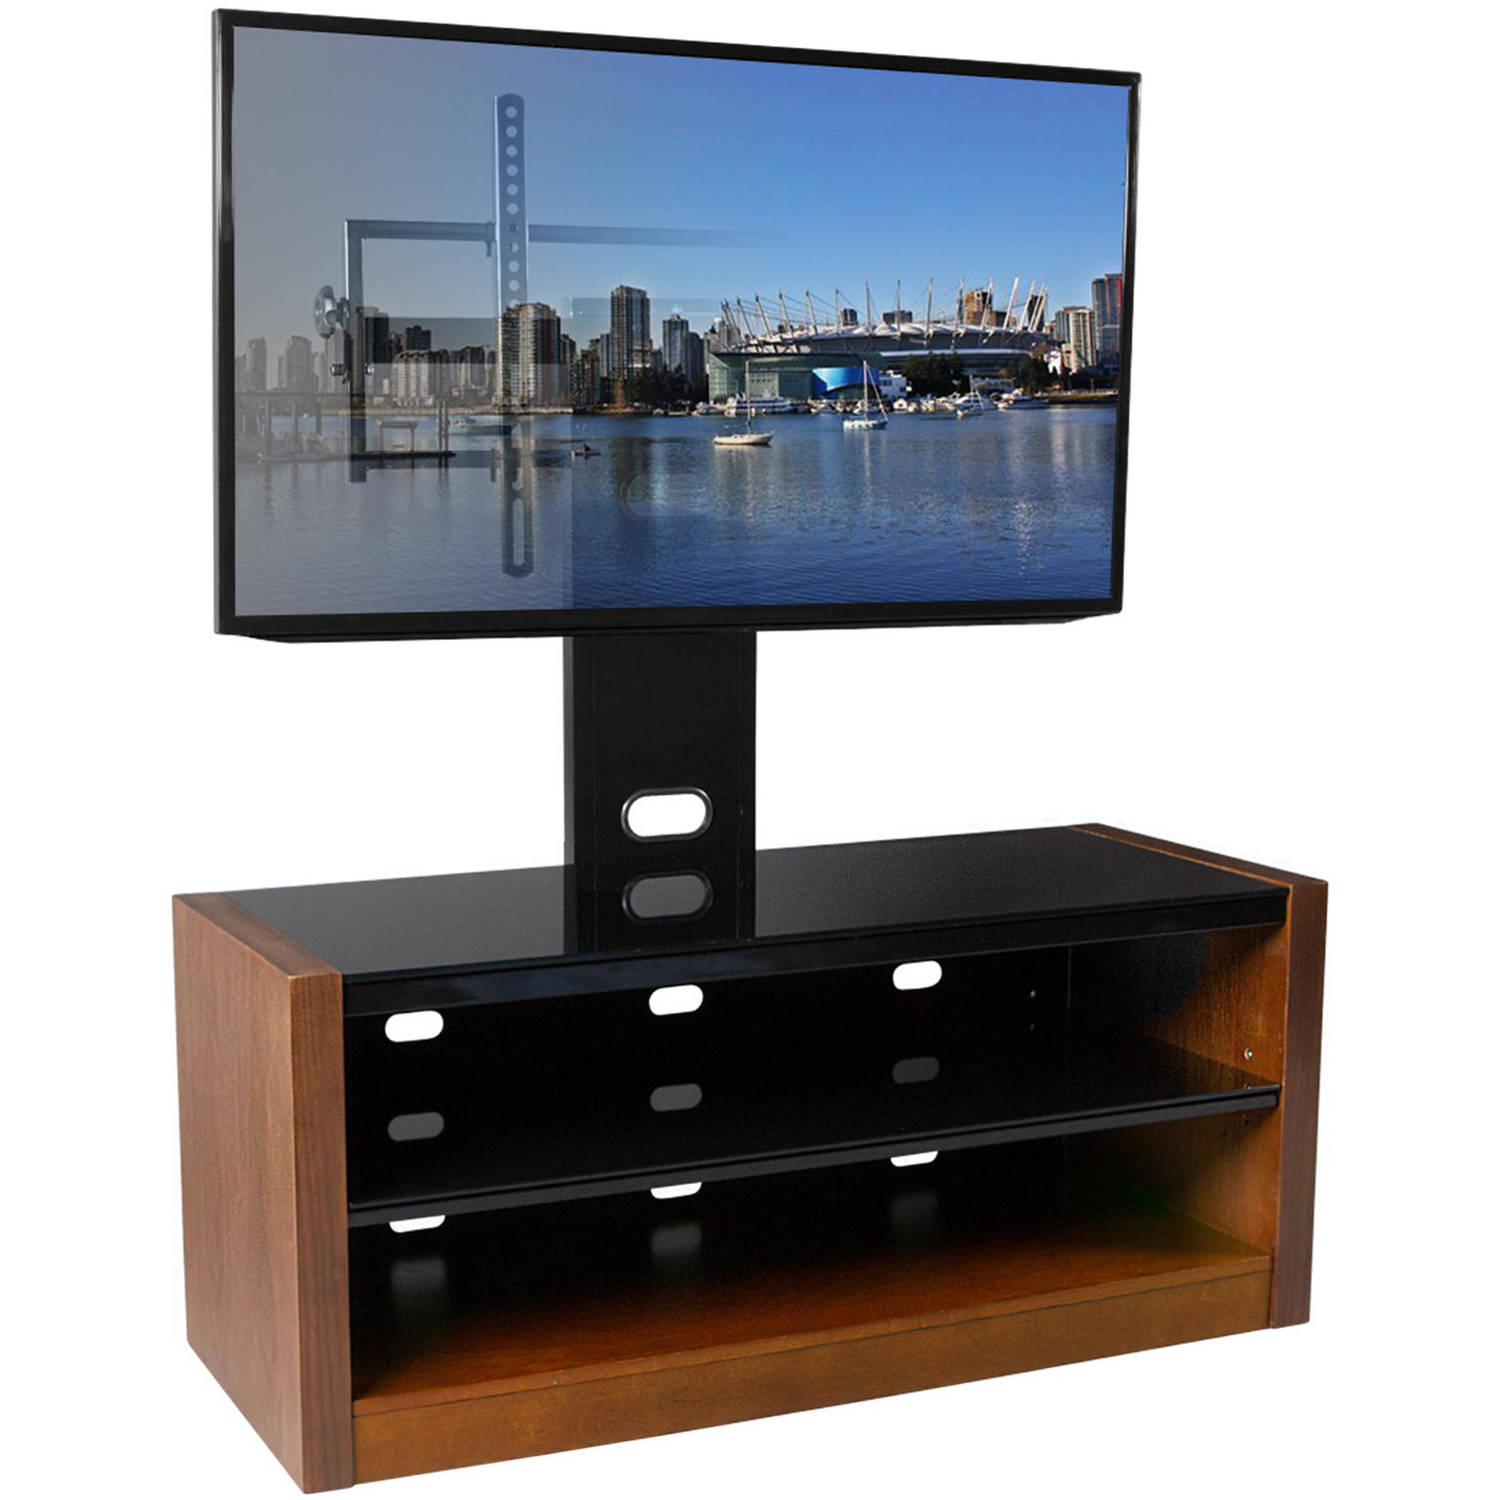 "Kanto MESA 46 Plus TV Stand with Tilt and Swivel Mount for Displays up to 80"", Walnut"